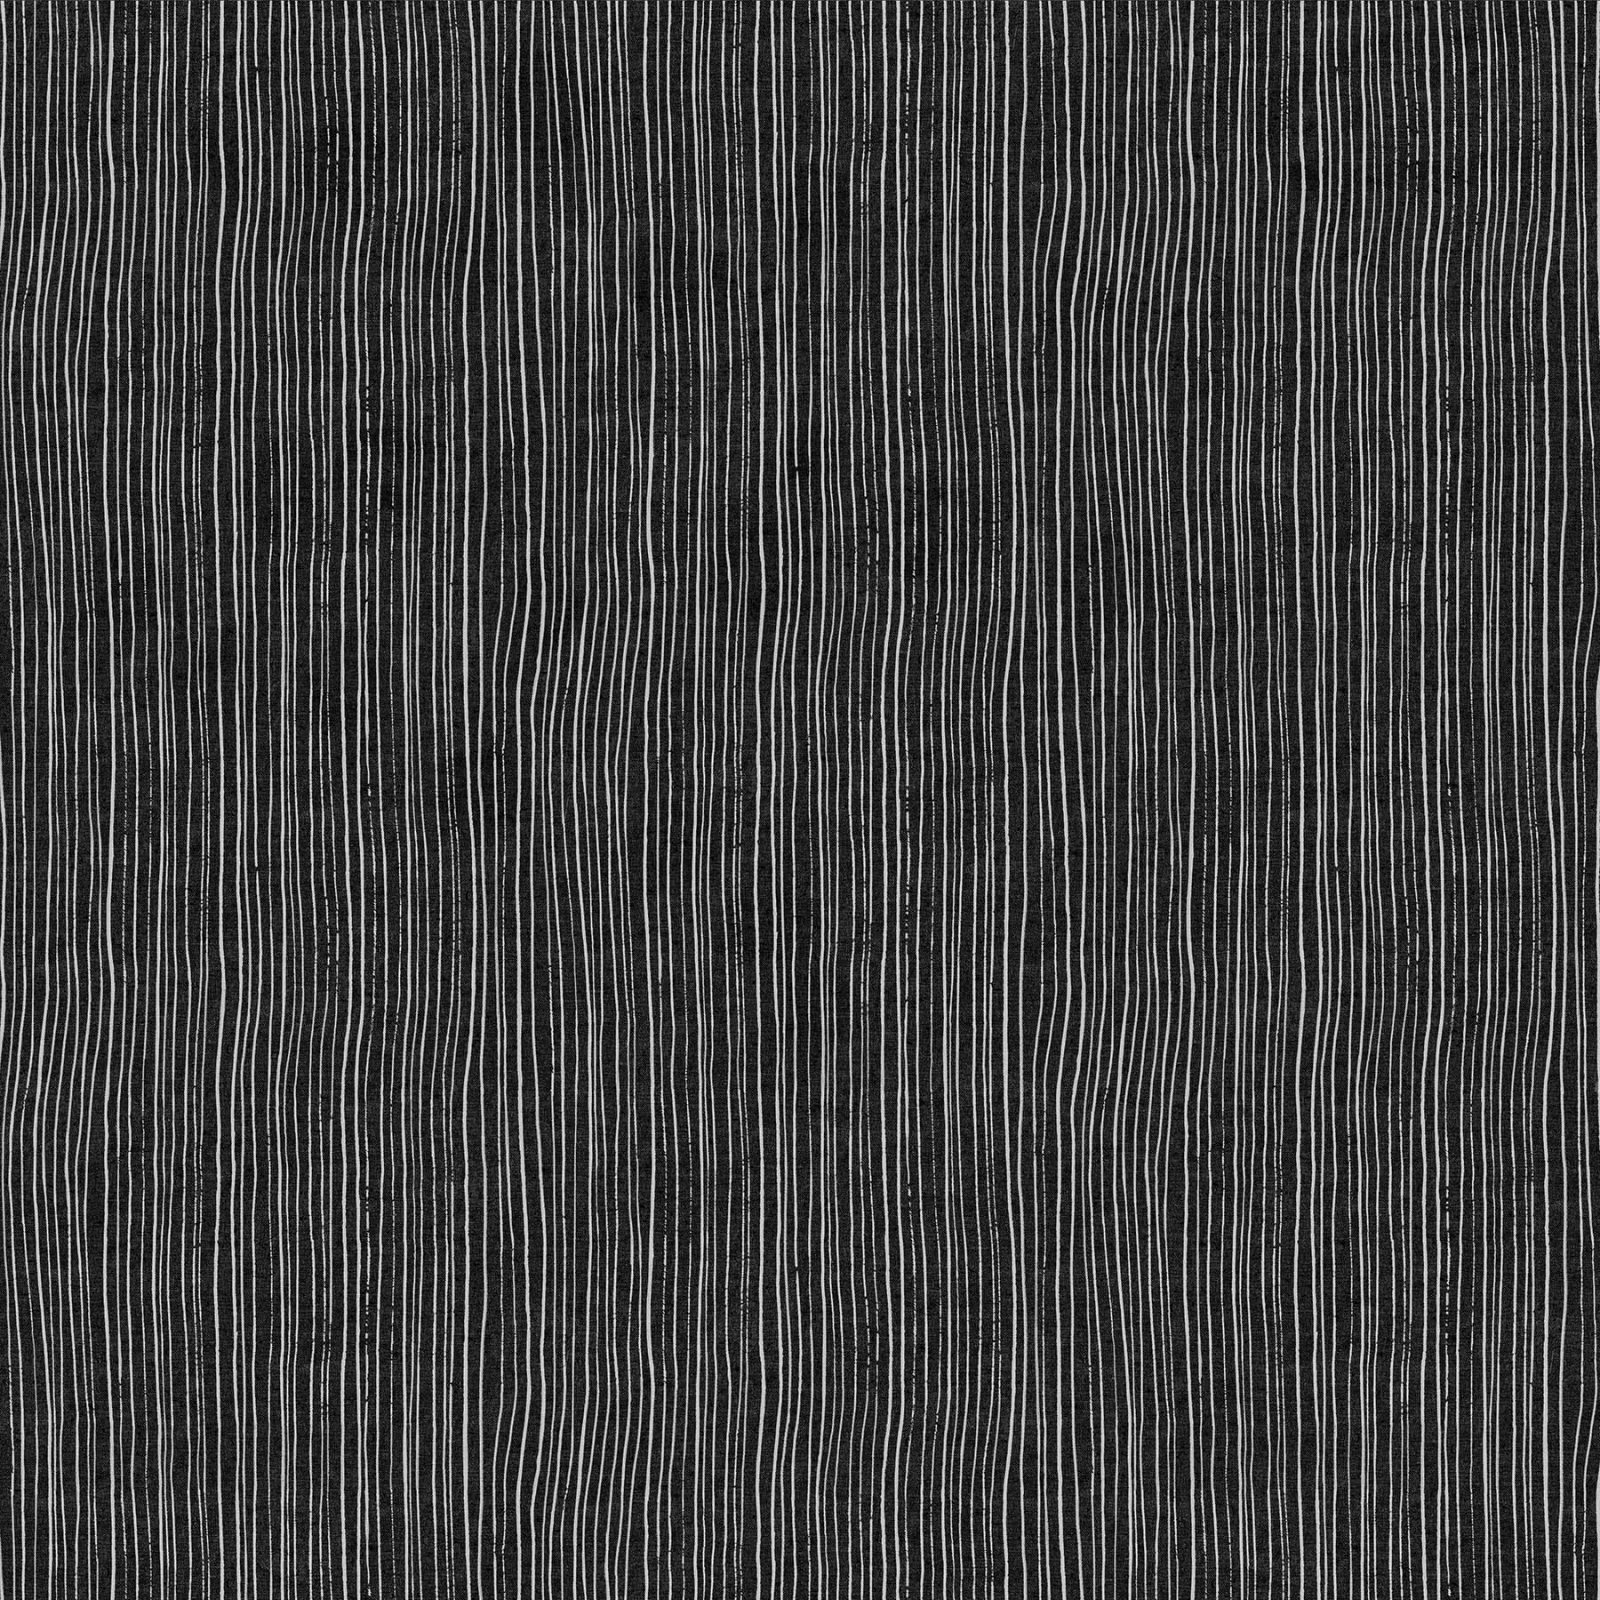 Harmony Strips Black (55% linen/45% cotton)